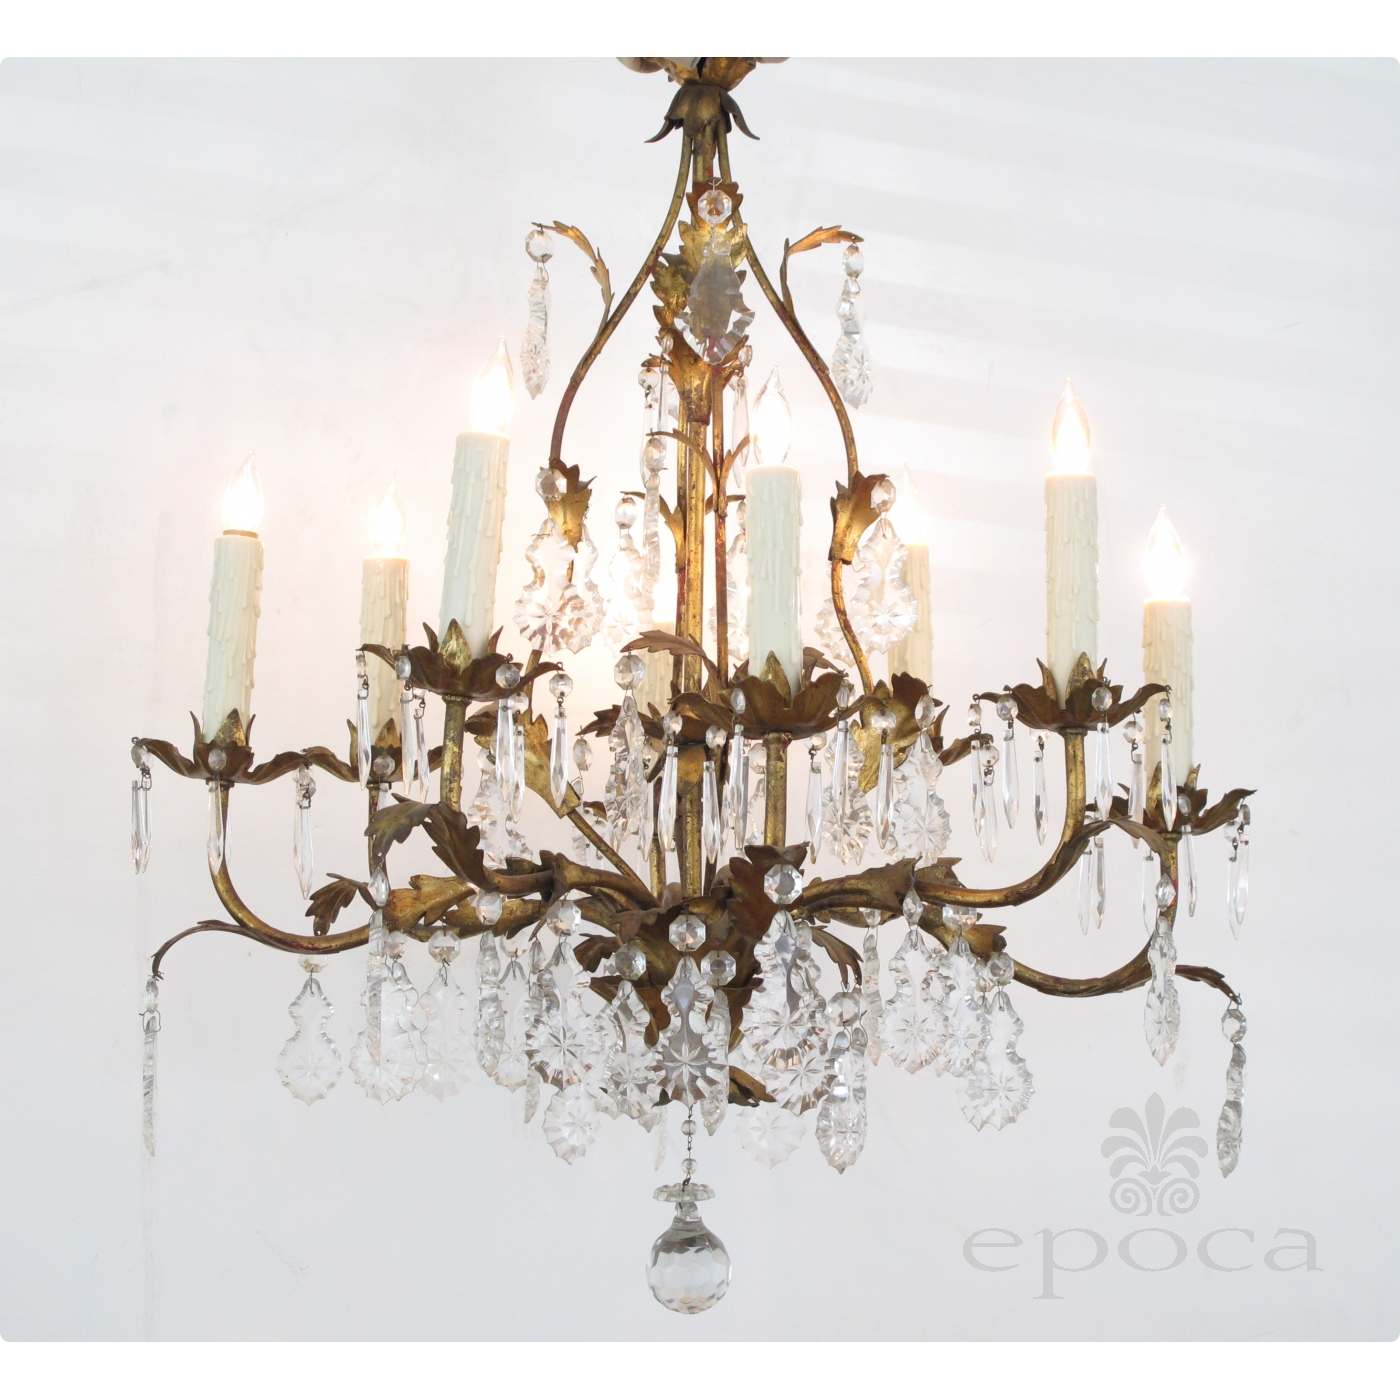 An elegant italian 1960s hollywood regency 8 light gilt tole elegant italian 1960s hollywood regency 8 light gilt tole chandelier mozeypictures Image collections